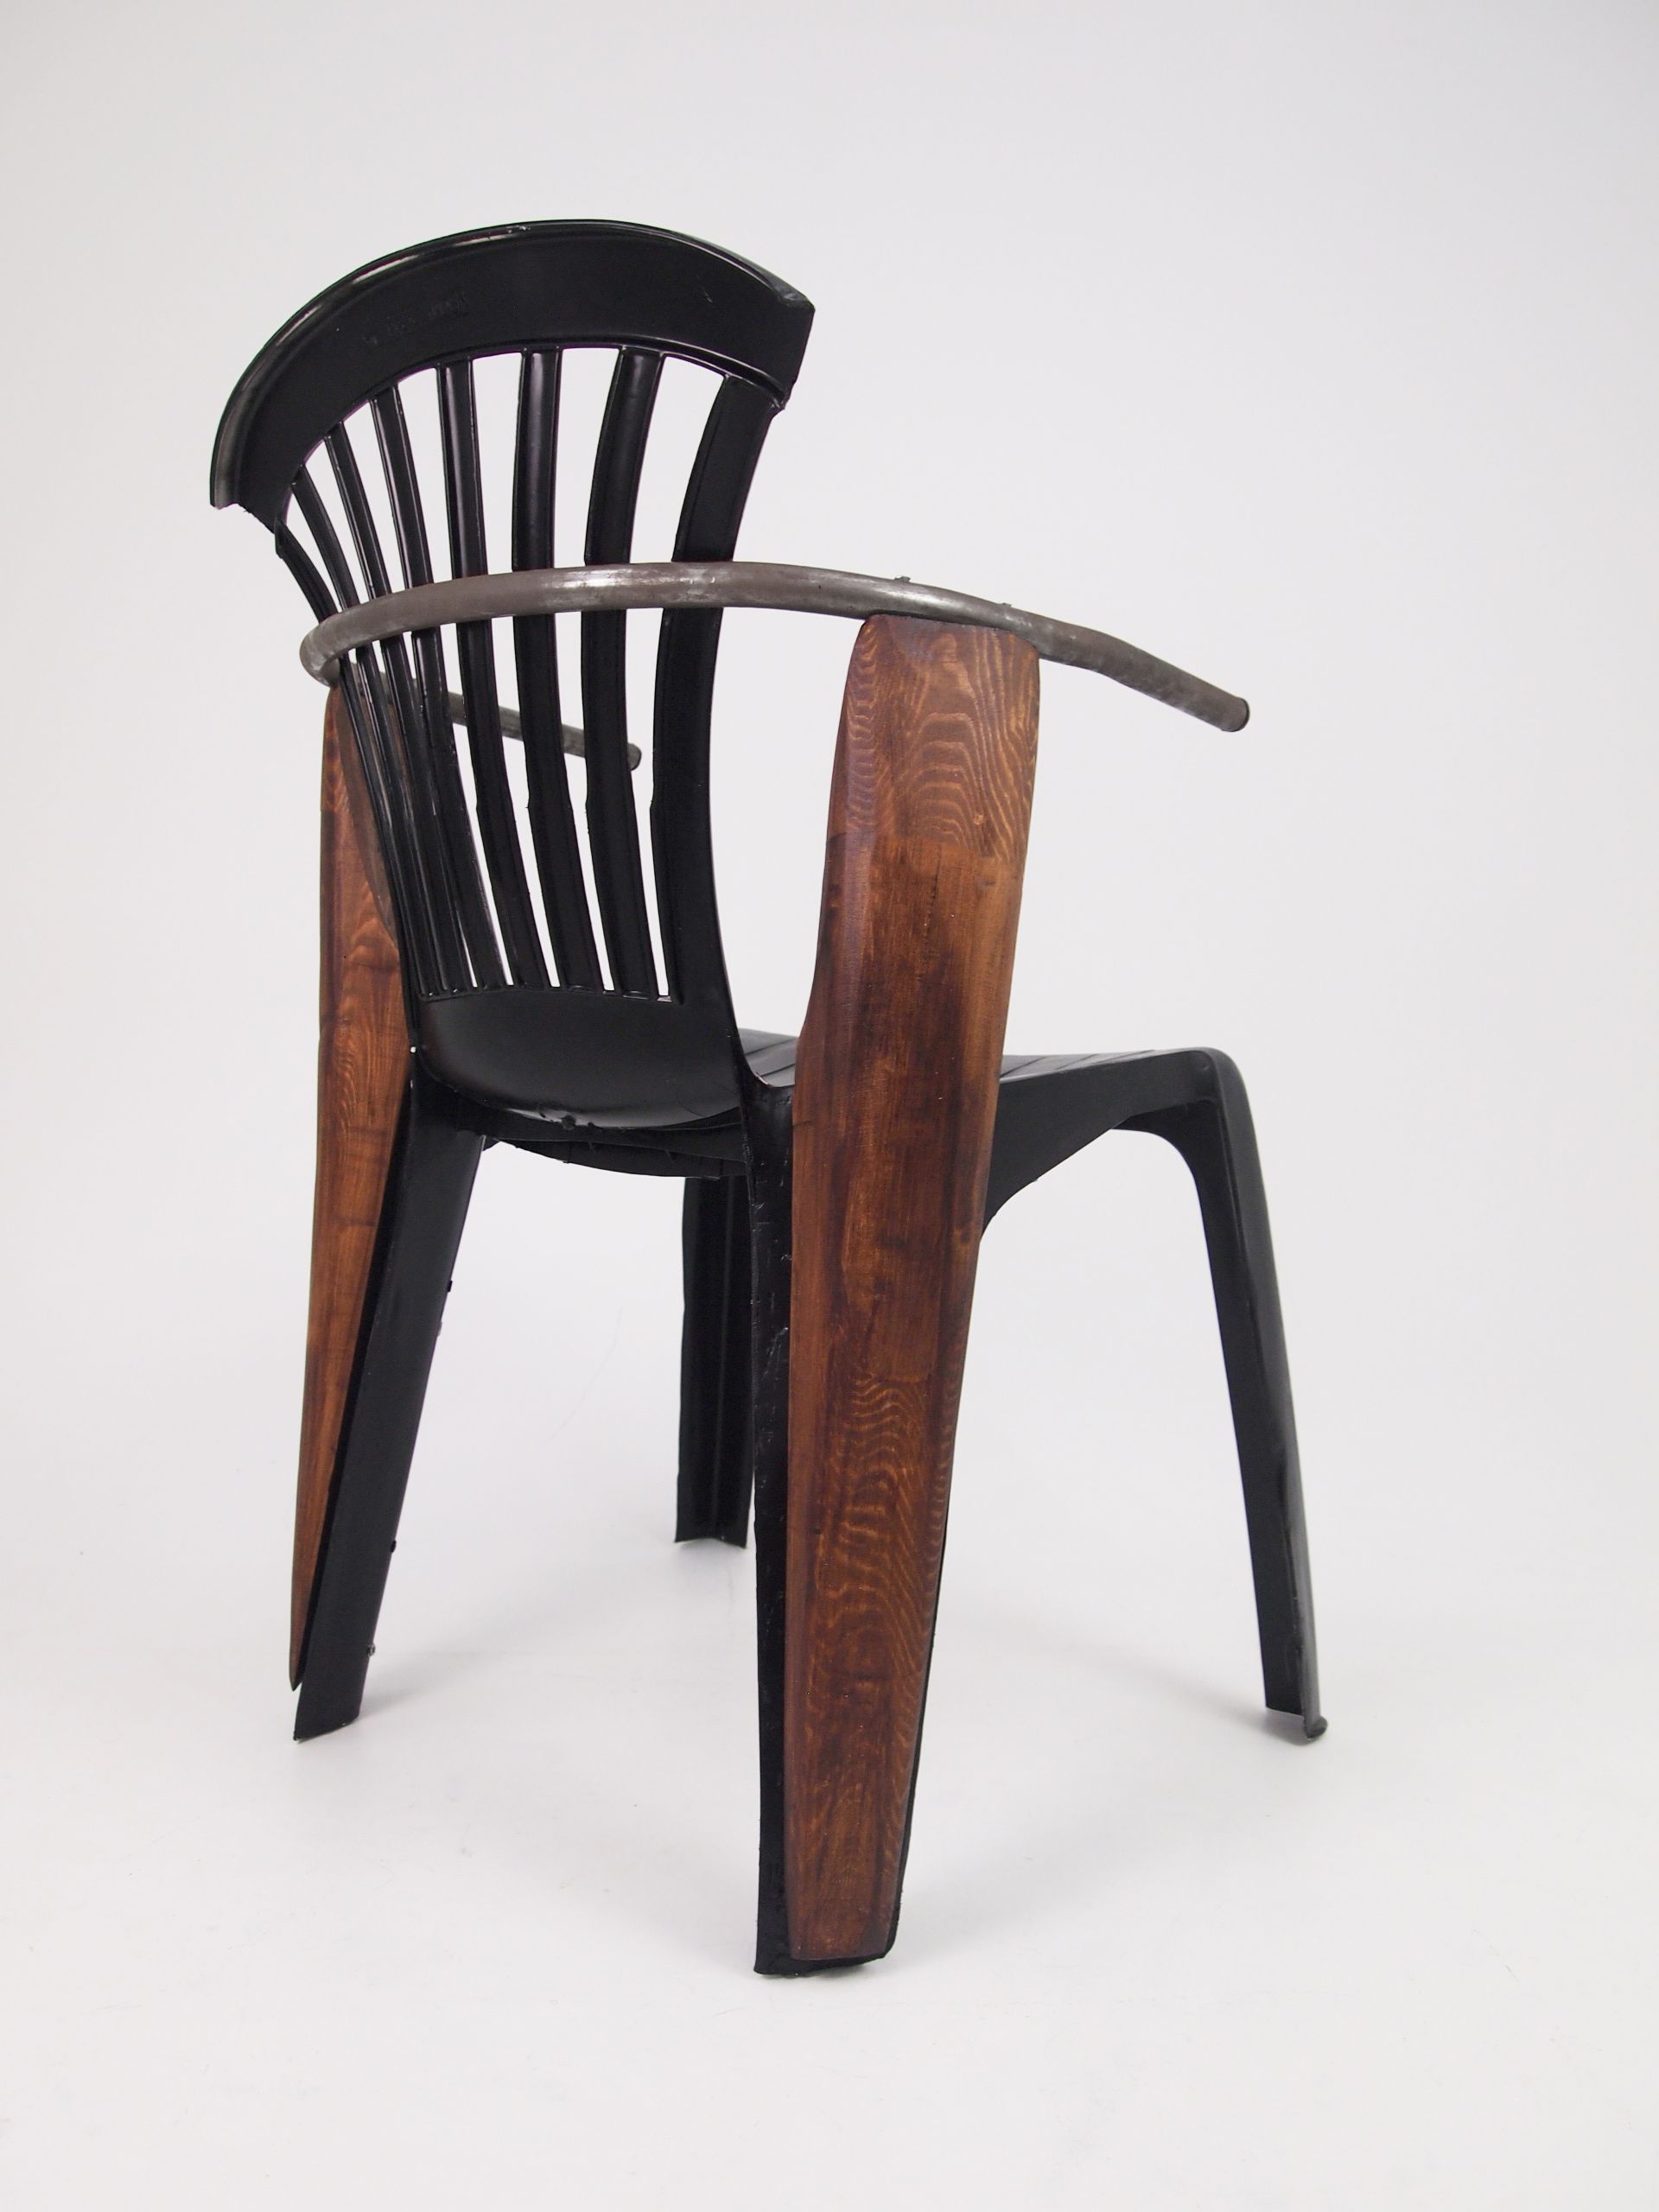 Meuble Jean Prouvé Furniture Design Course Inspiration Standard Chair By